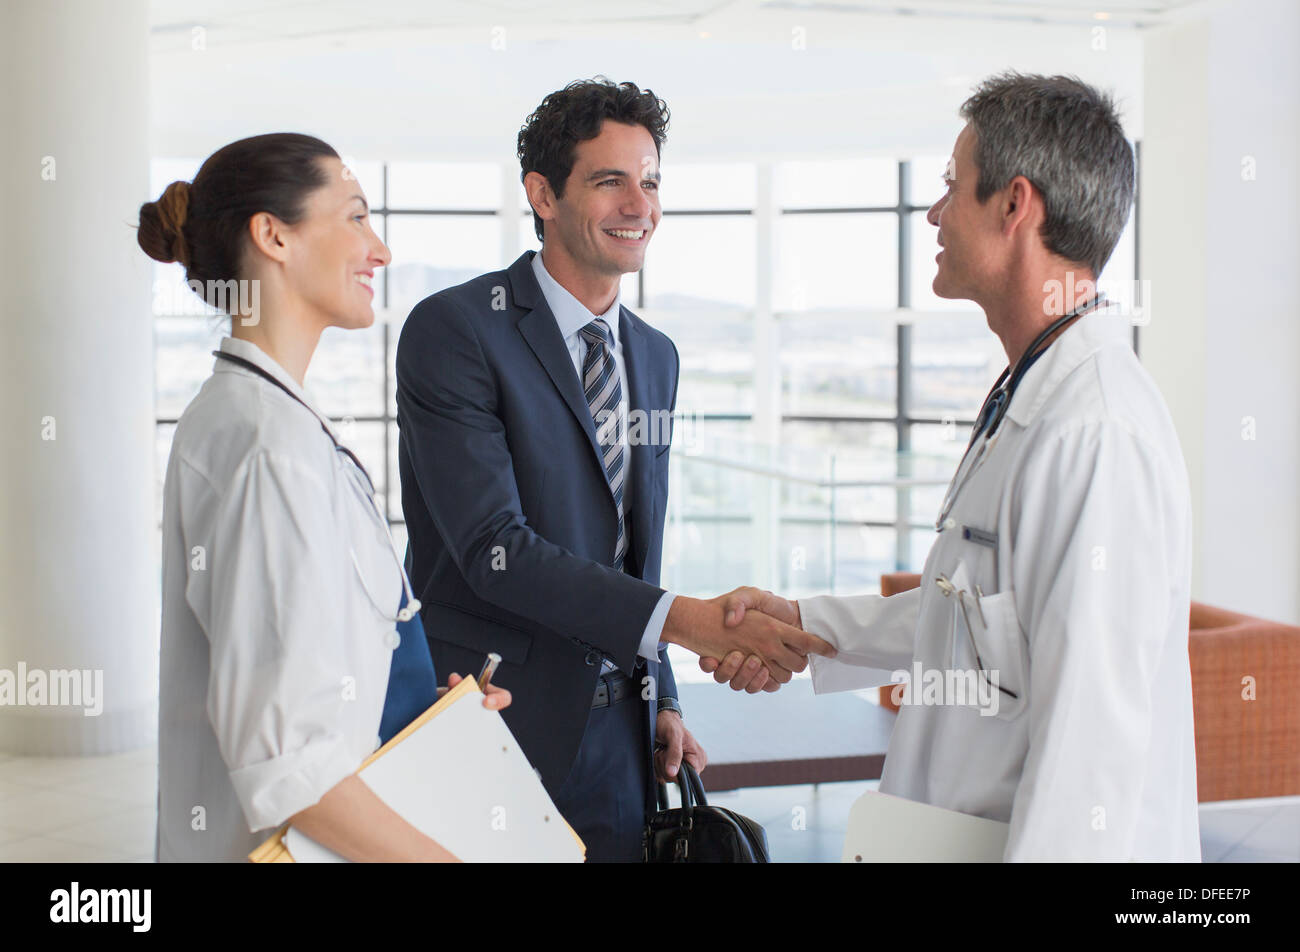 Doctor and businessman handshaking in hospital lobby - Stock Image